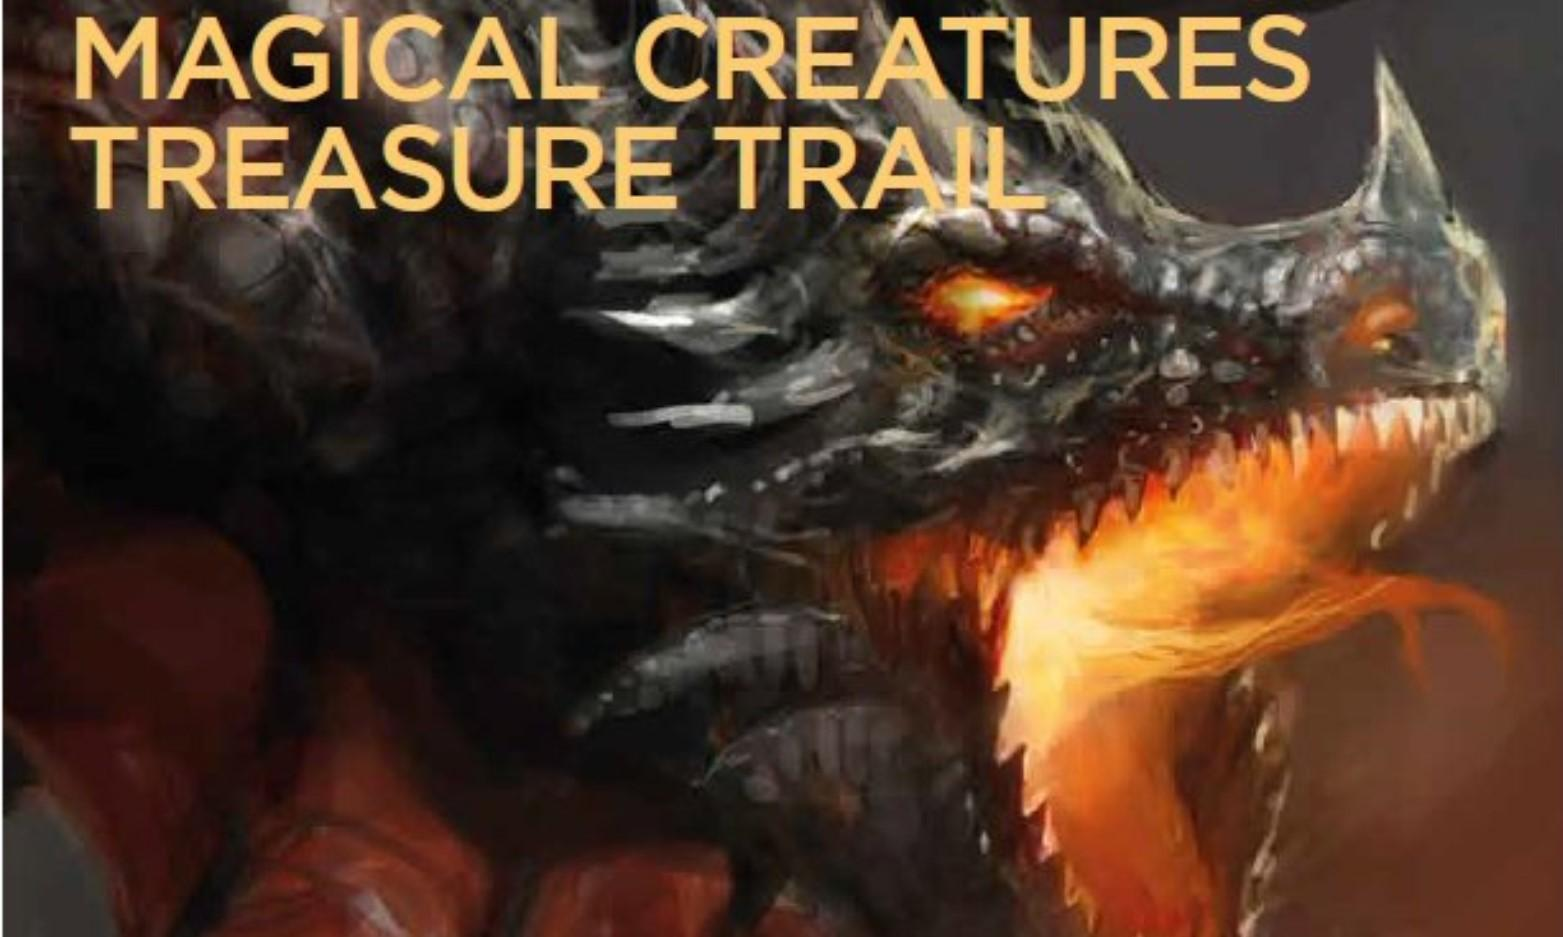 Magical Creatures Treasure Trail at Carew Castle